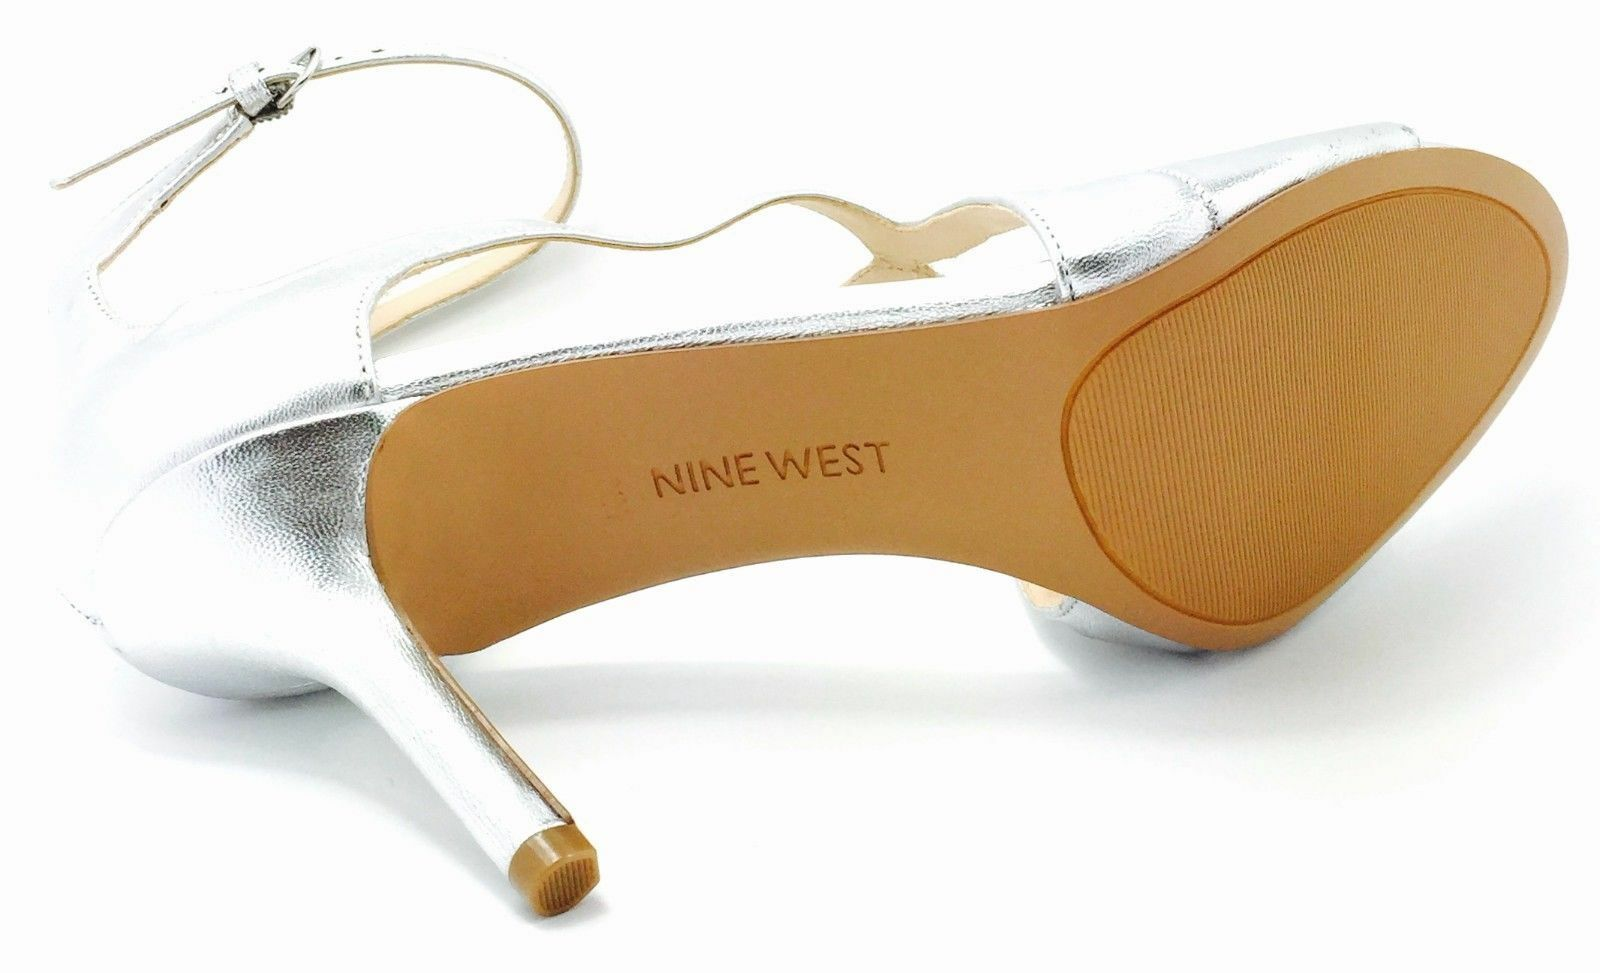 Nine West Gerbera 10 M Silver Leder Strappy Open Ankle Toes Ankle Open Strap Sandales New 941910